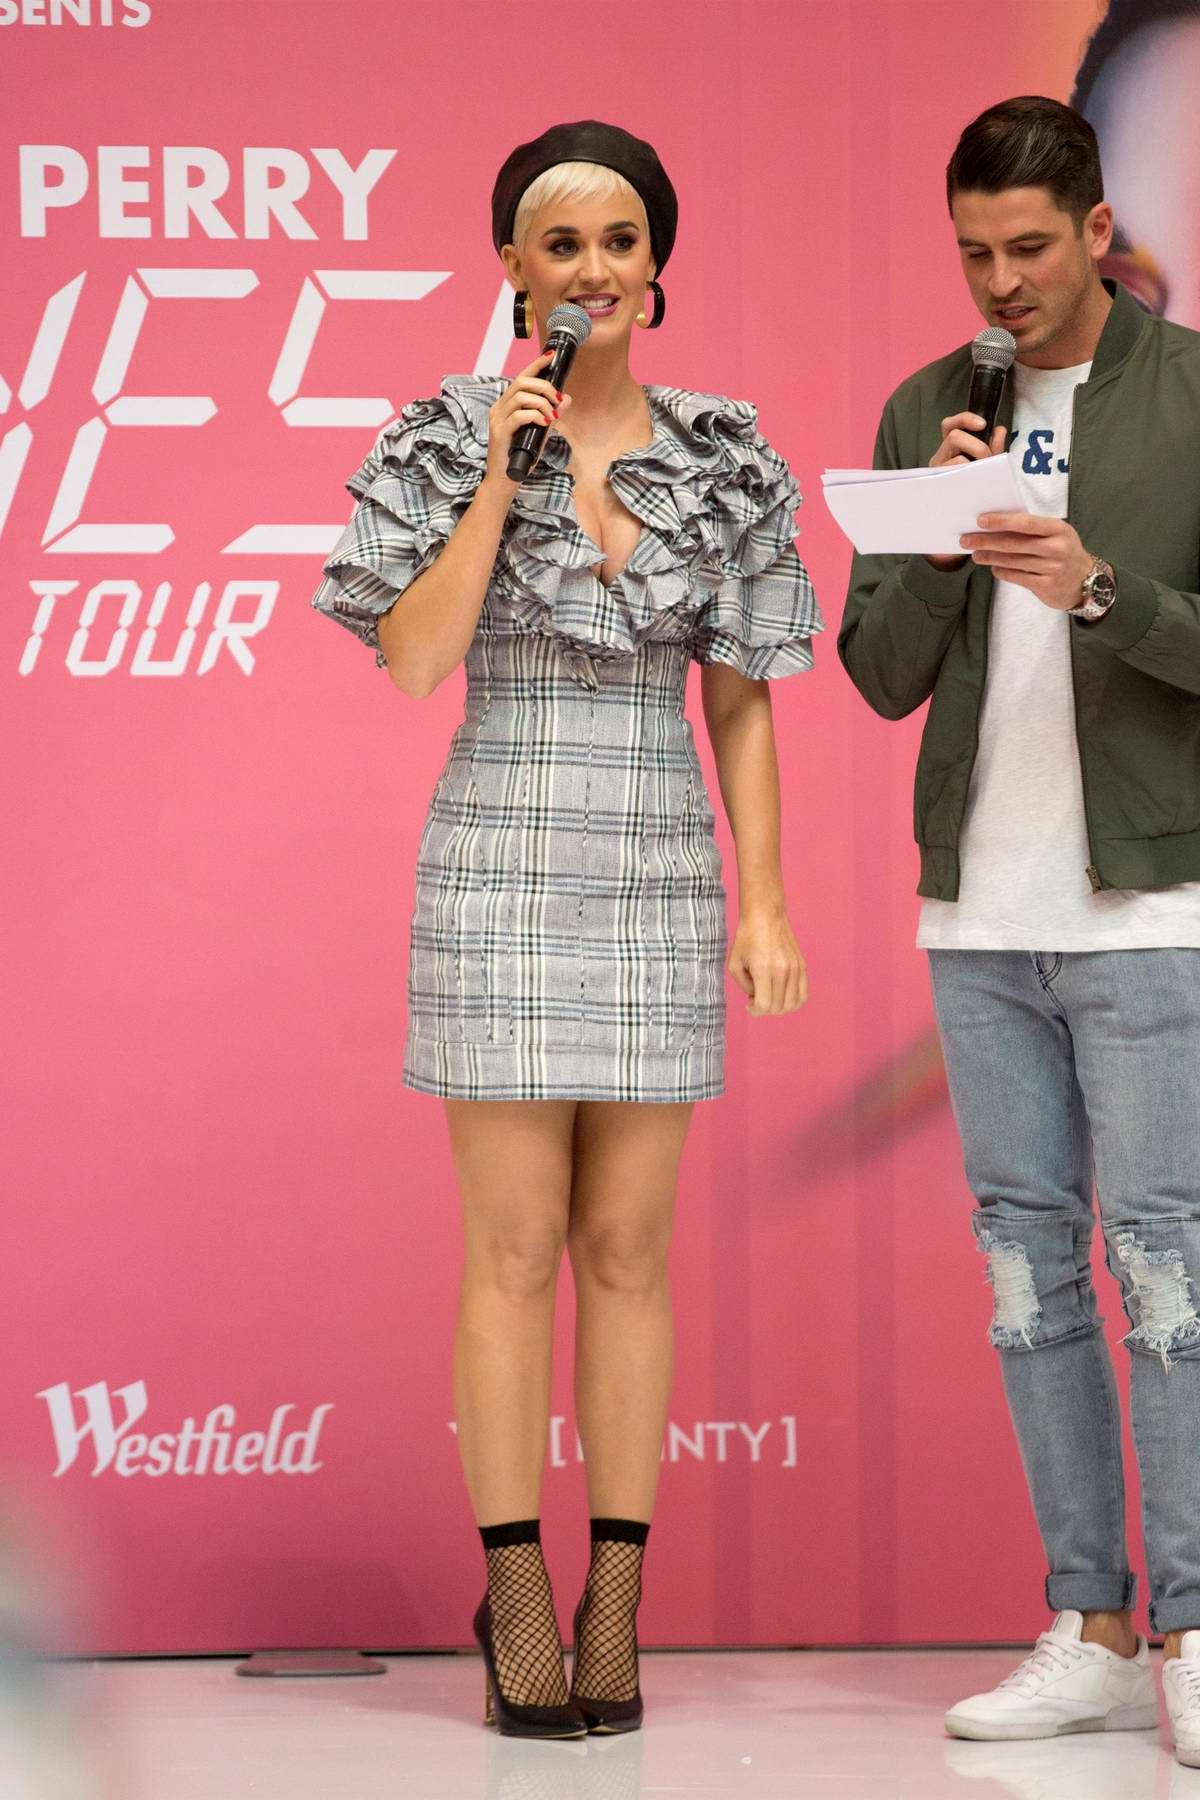 Katy Perry looks cute in a short plaid dress with a beret during a Q&A session at Myer store in Adelaide, Australia